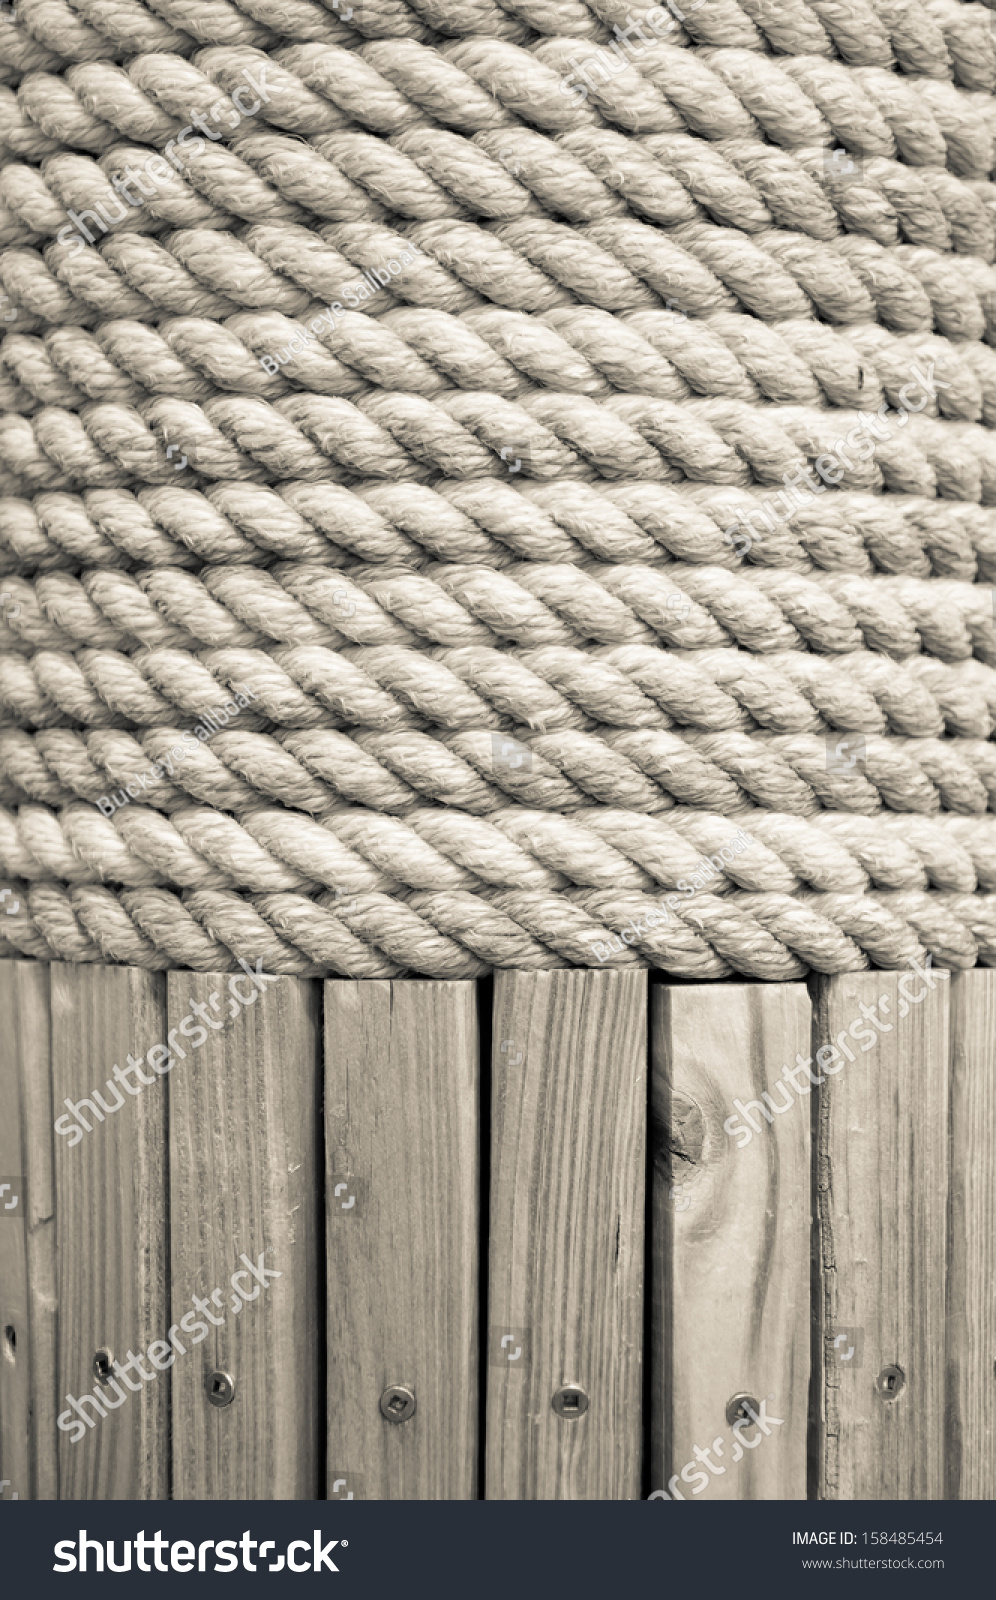 Wooden Post Texture braided white rope wrapped around wooden stock photo 158485454